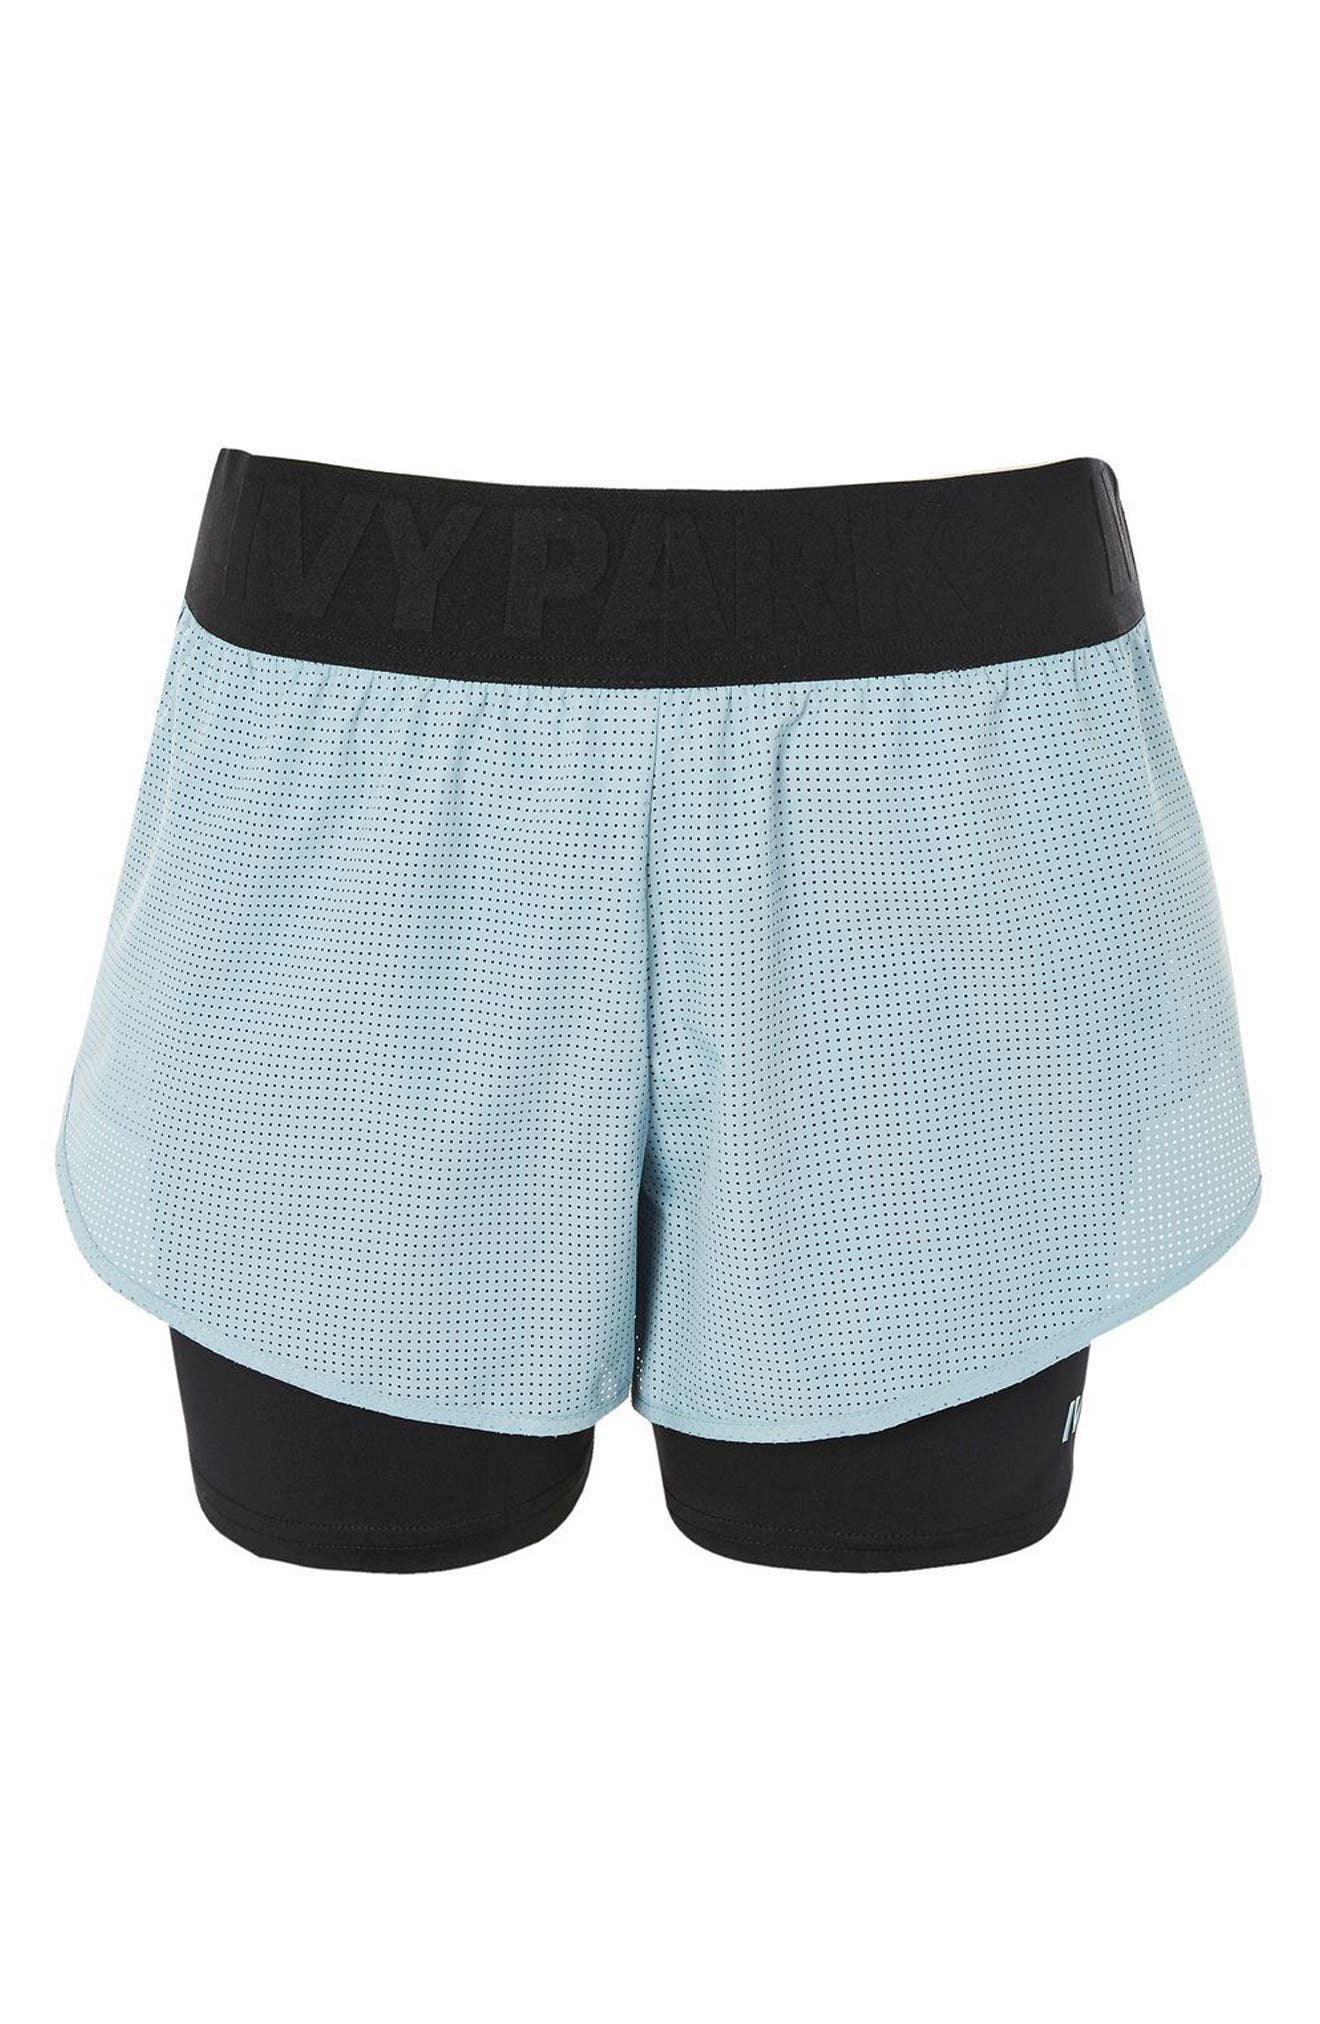 Perforated 2-in-1 Runner Shorts,                             Alternate thumbnail 4, color,                             450